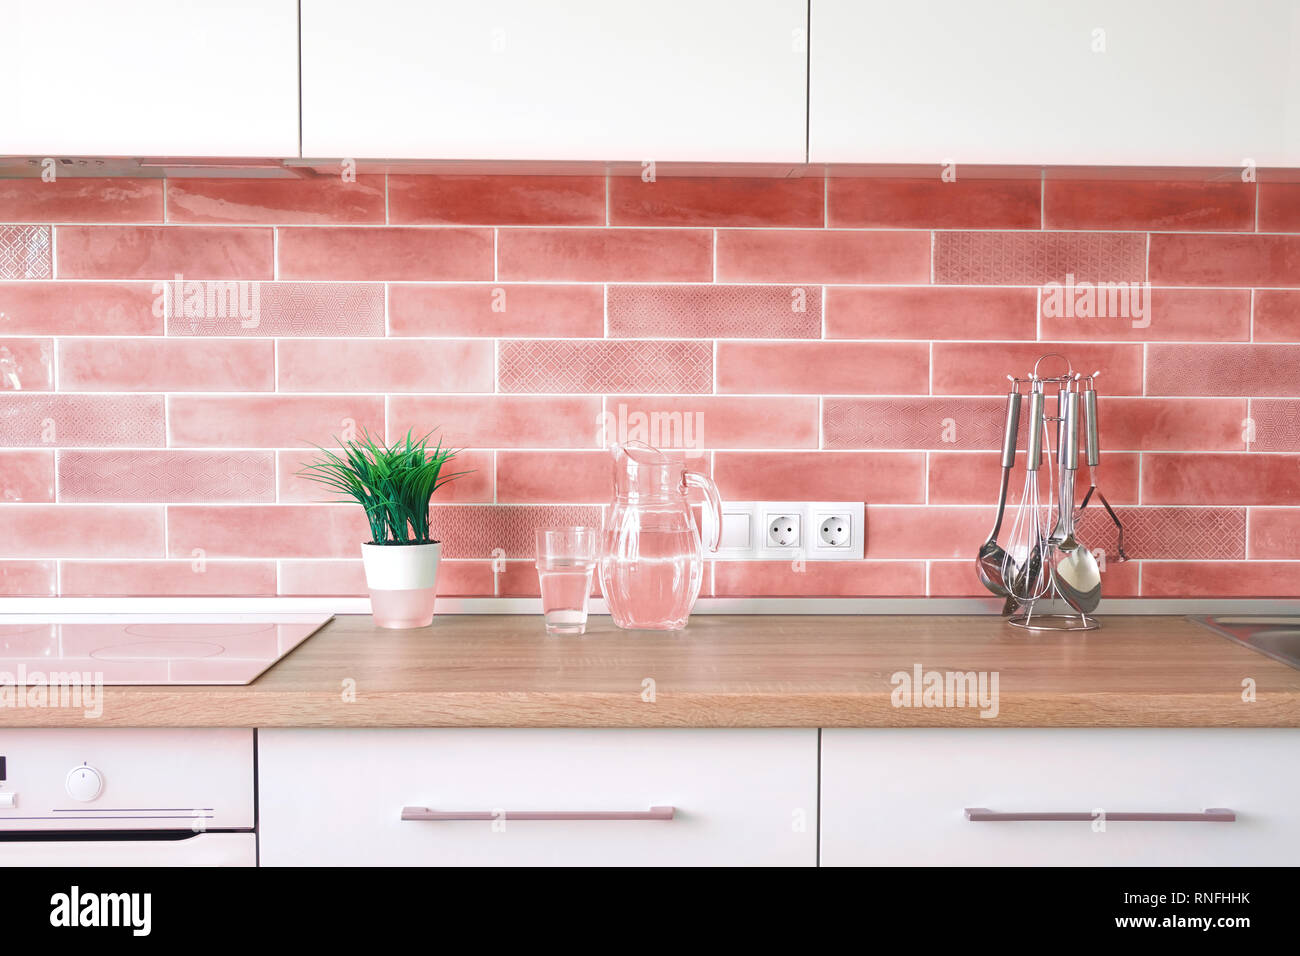 Modern Kitchen At Home With Kitchenware And Flowerpot On A Top And Wall Tiles In A Trend Color Of The Year 2019 Living Coral Pantone Stock Photo Alamy